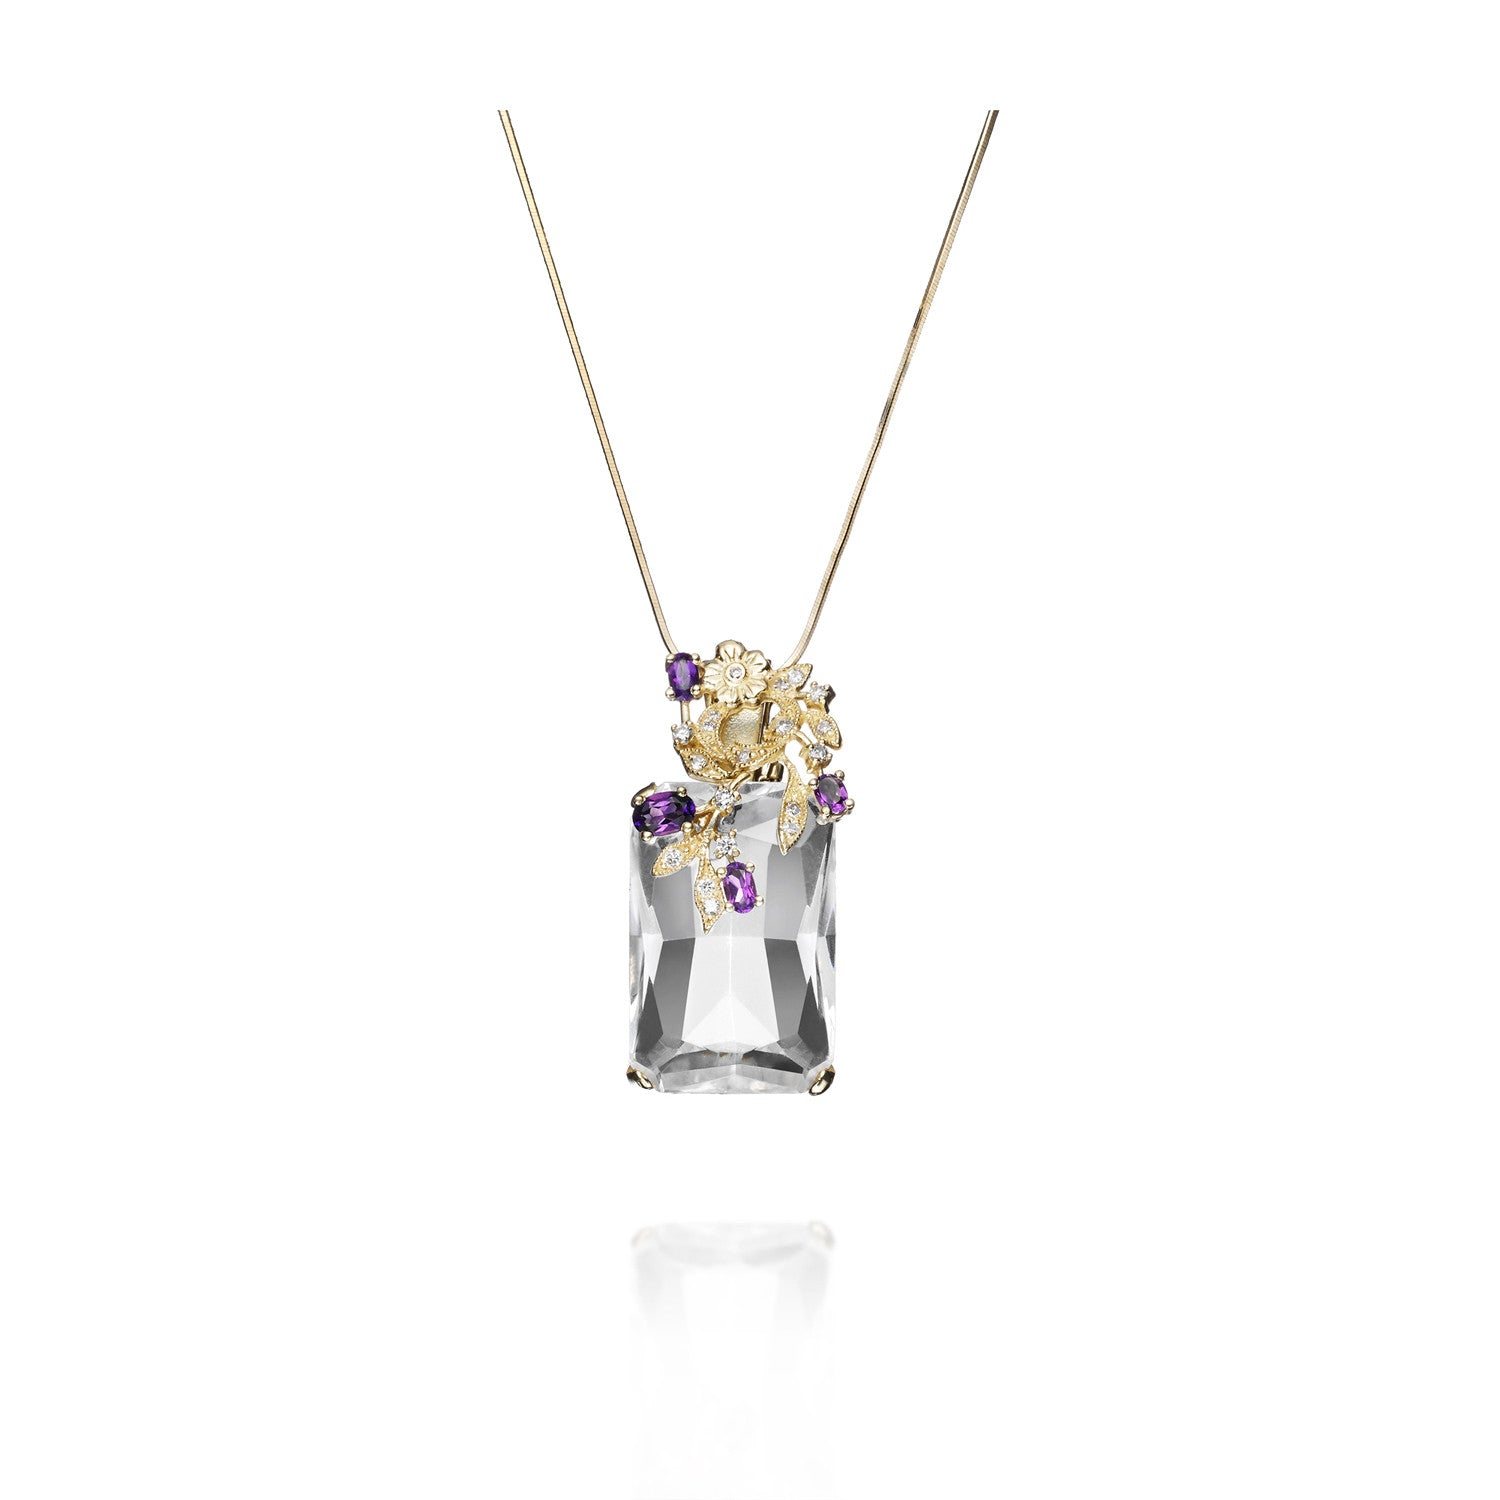 Signature Pendant Necklace with Amethyst, gold and diamonds